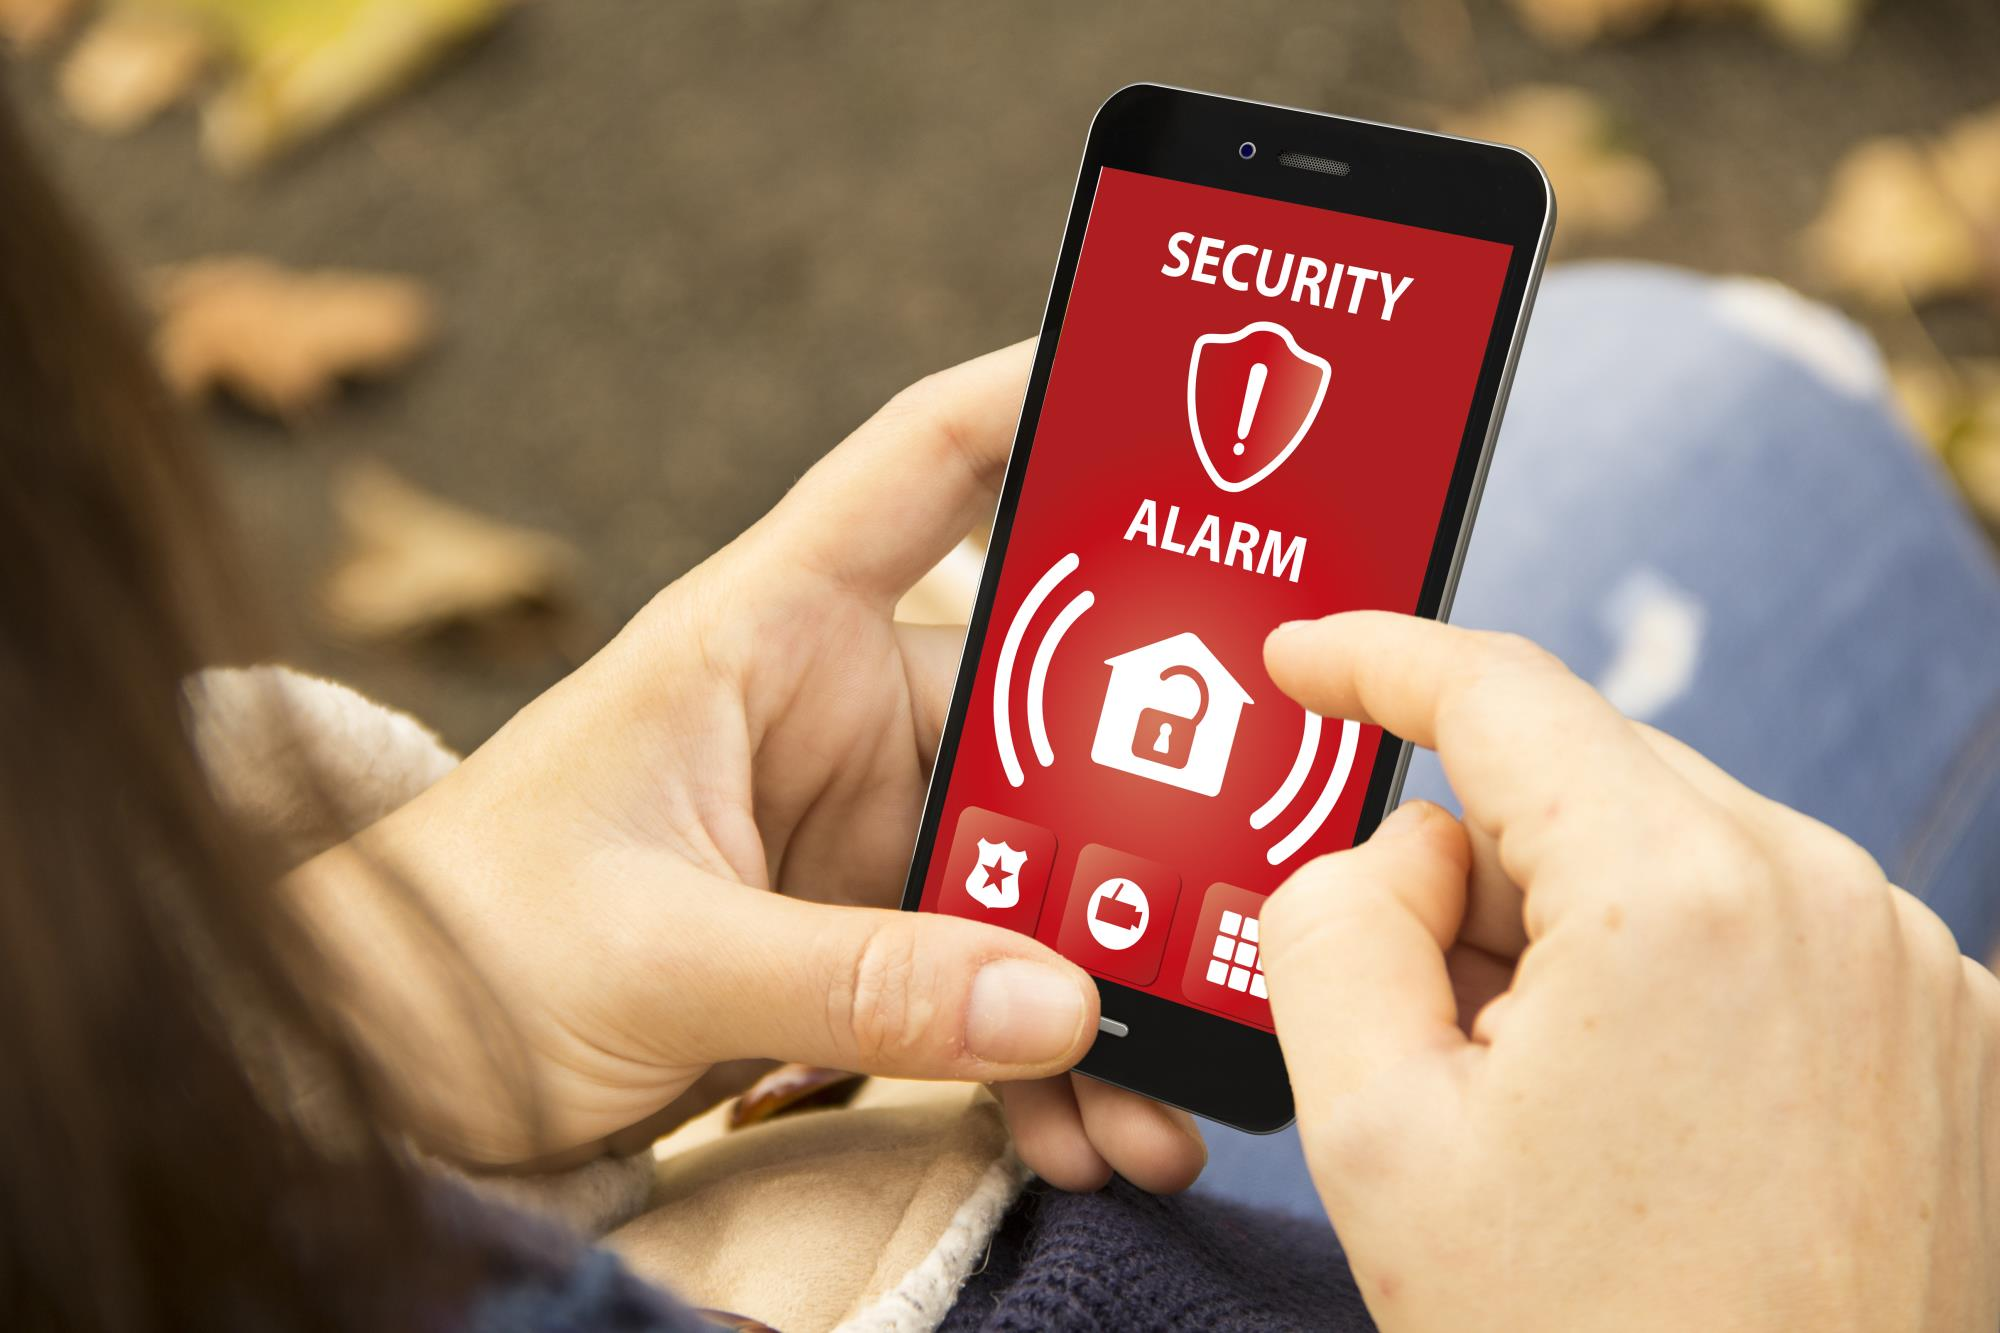 stock photo of alarm alert on a smartphone